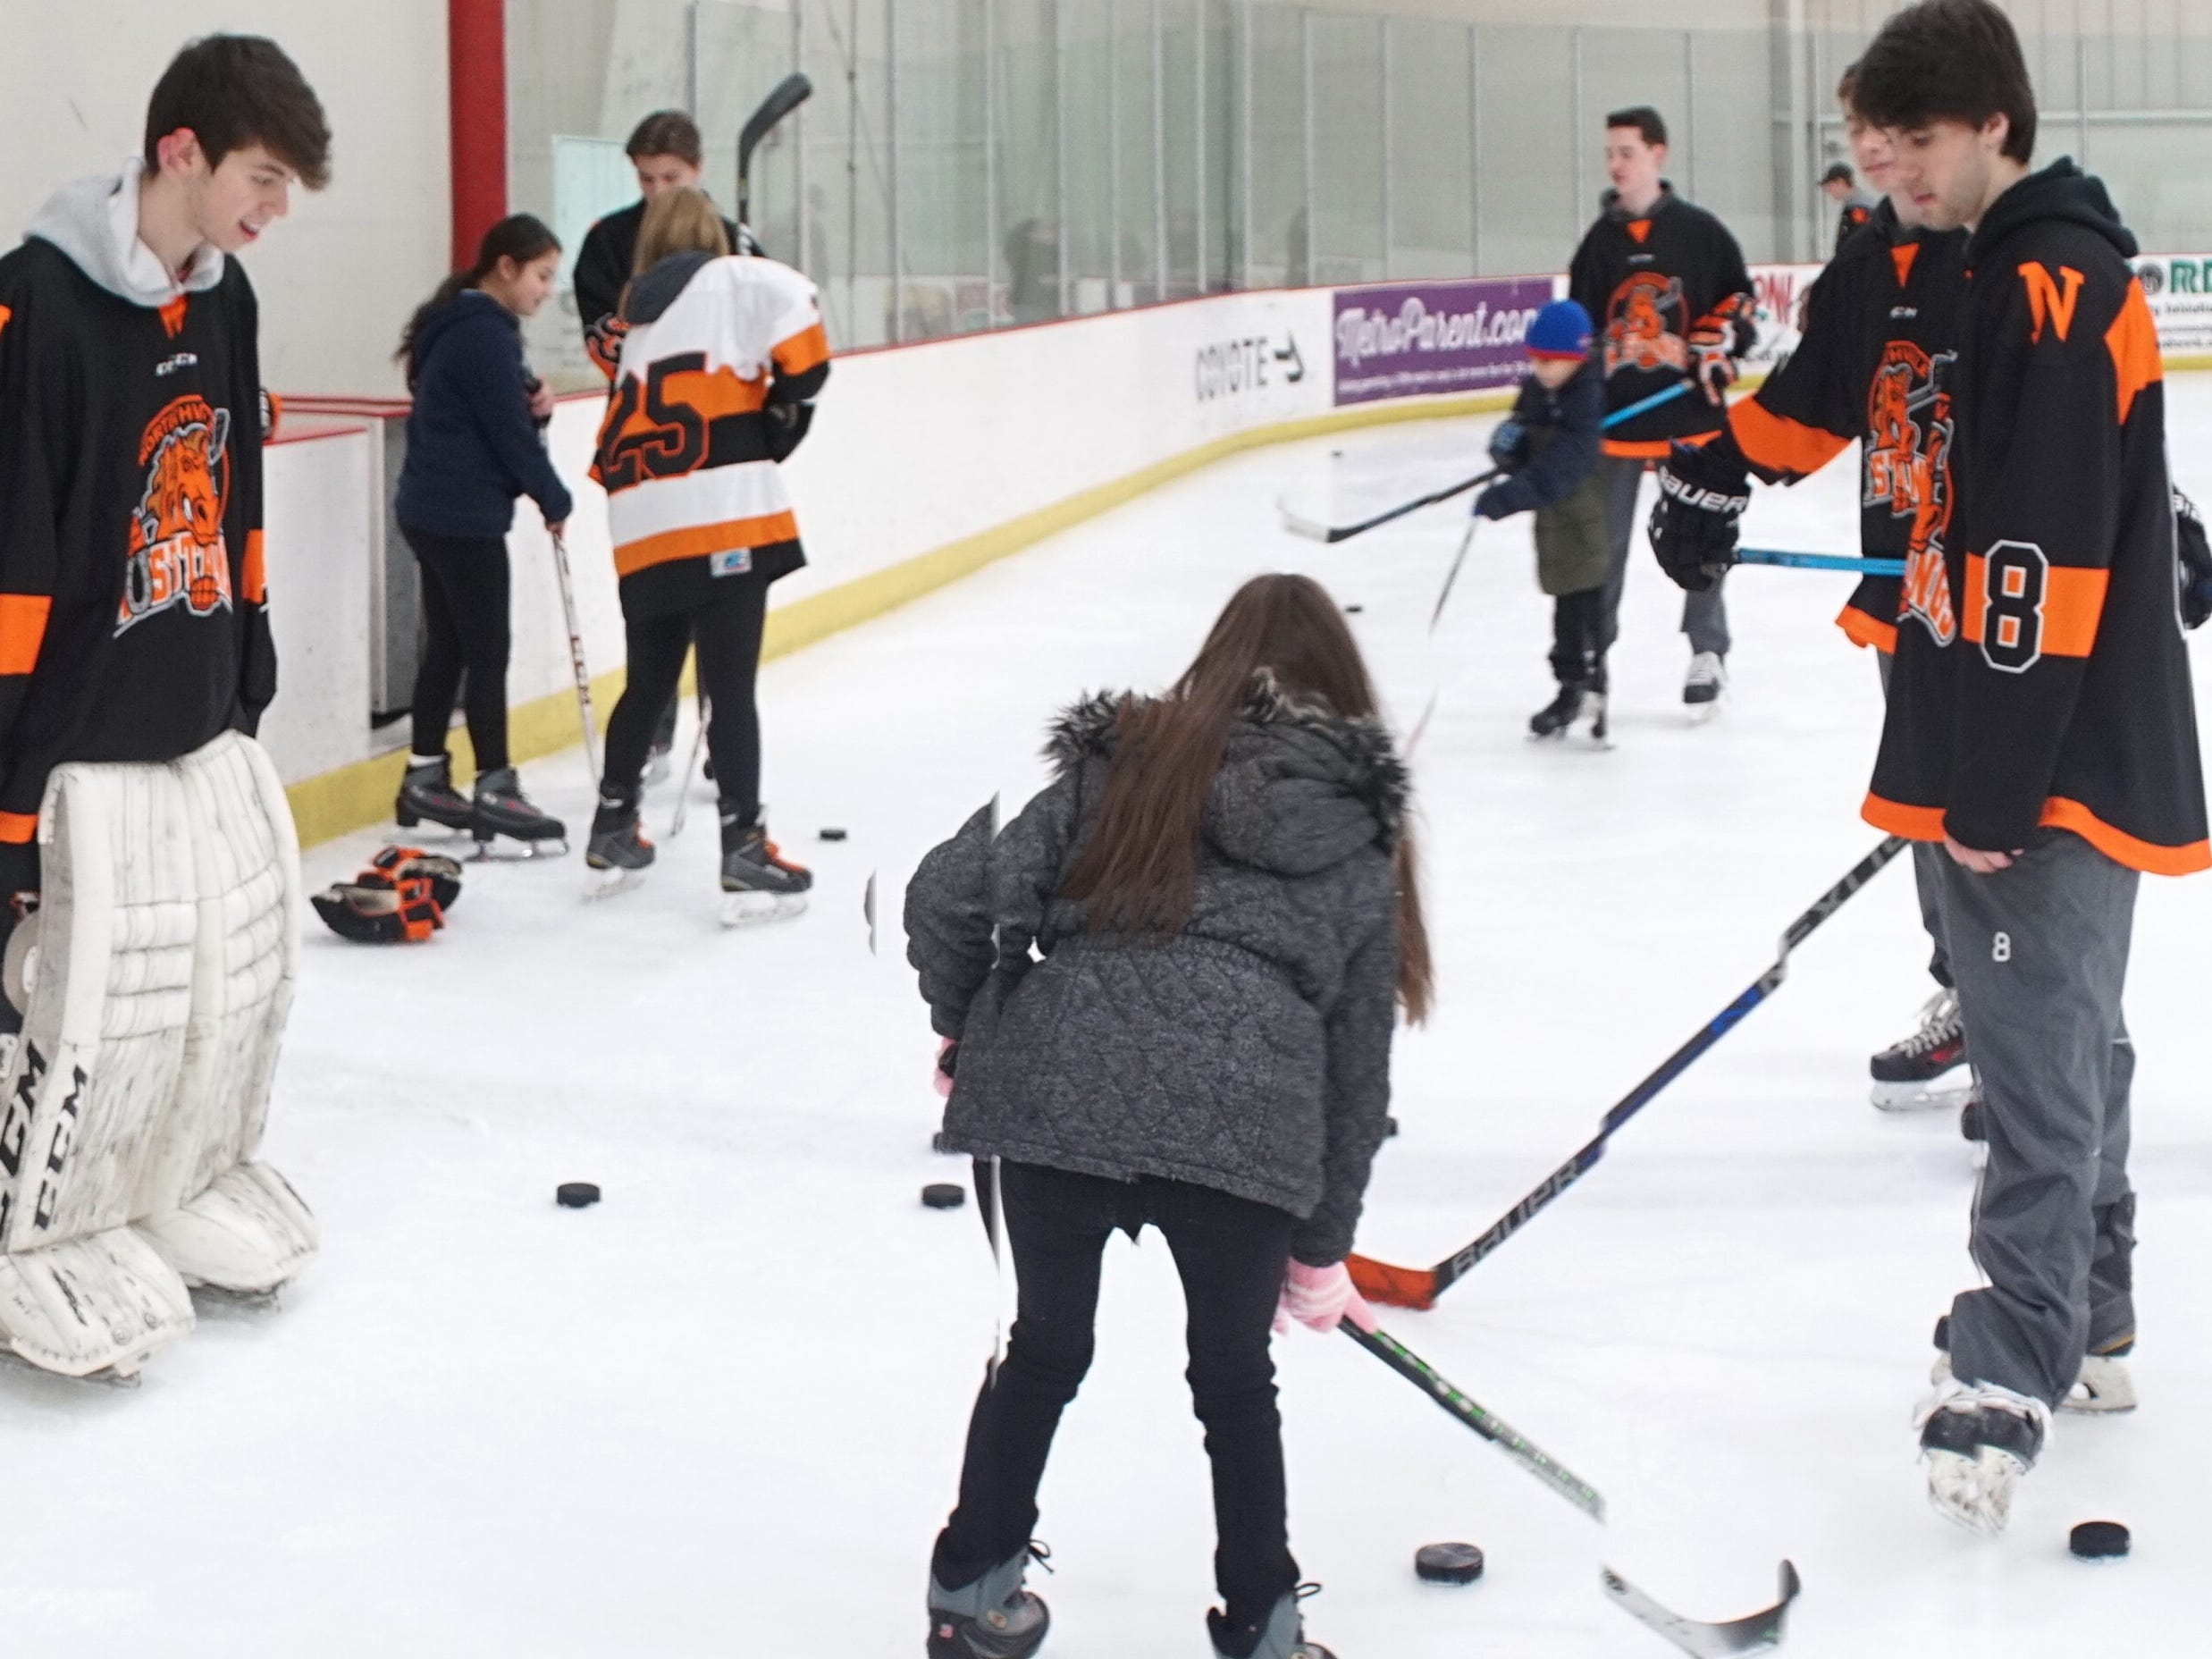 Northville High hockey players and their visitors from Neinas Elementary in Detroit on the frozen surface of the Novi Ice Arena on Feb. 13.